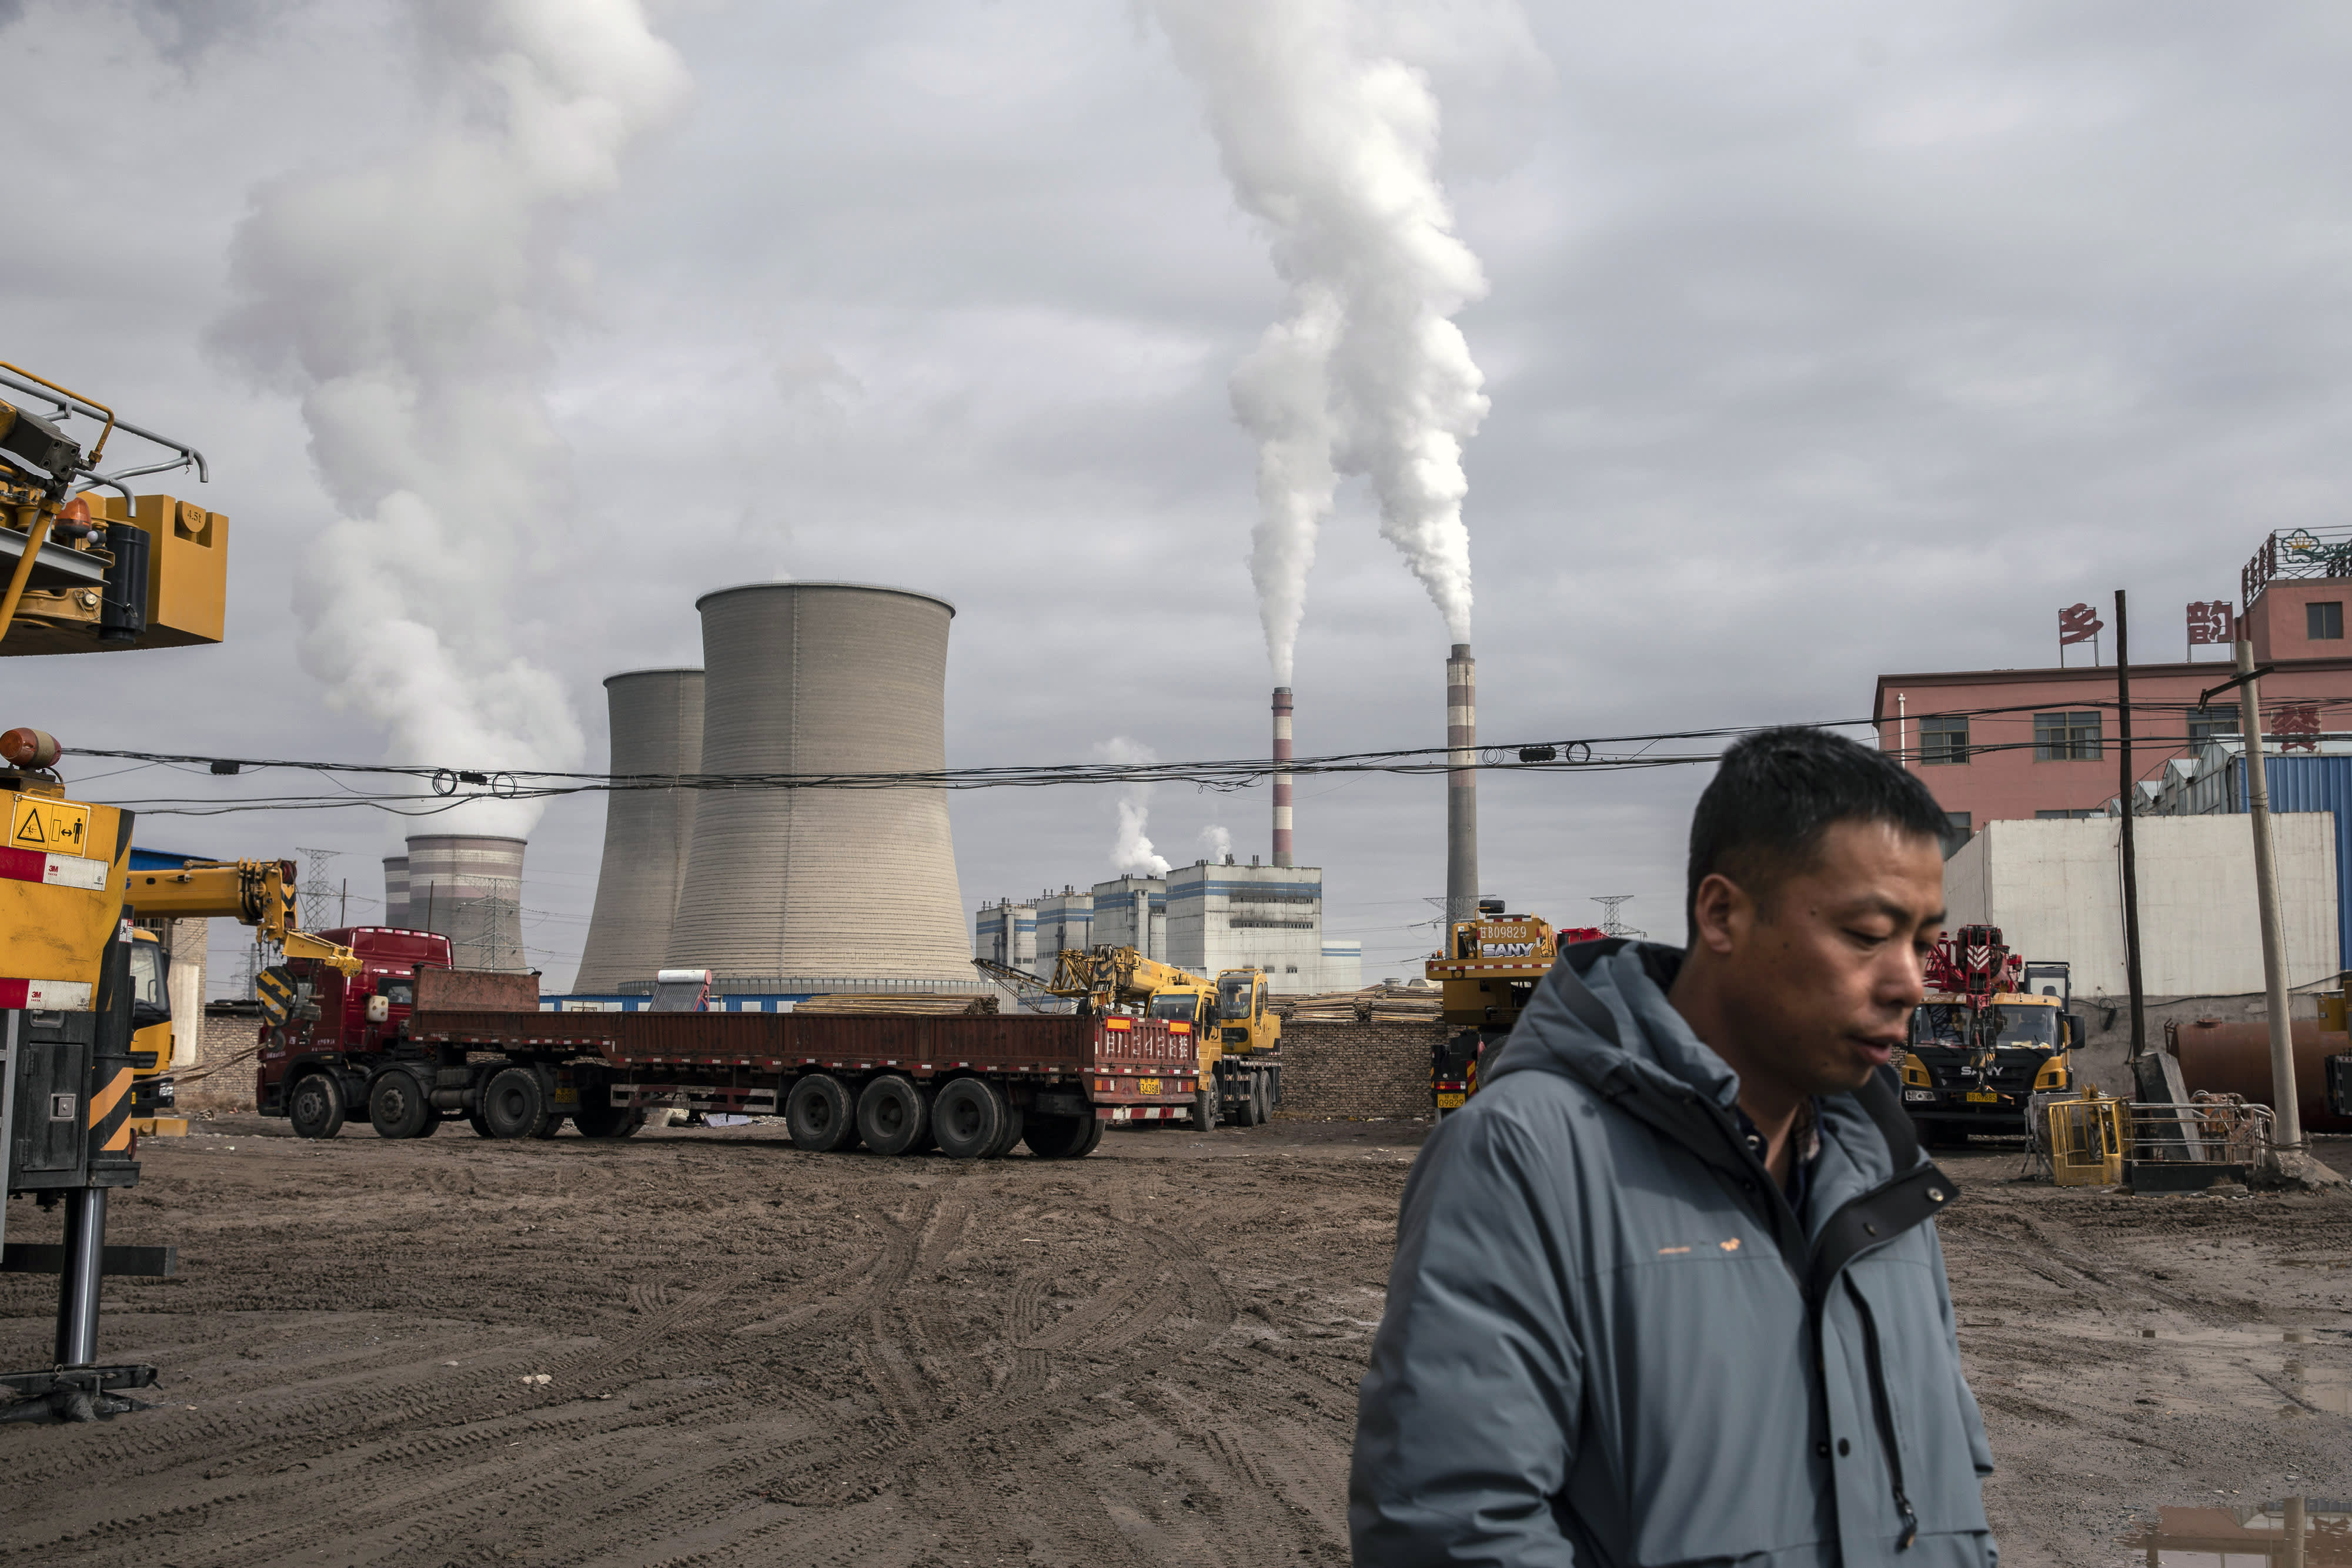 China's greenhouse gas emissions exceed those of U.S. and developed countries combined, report says